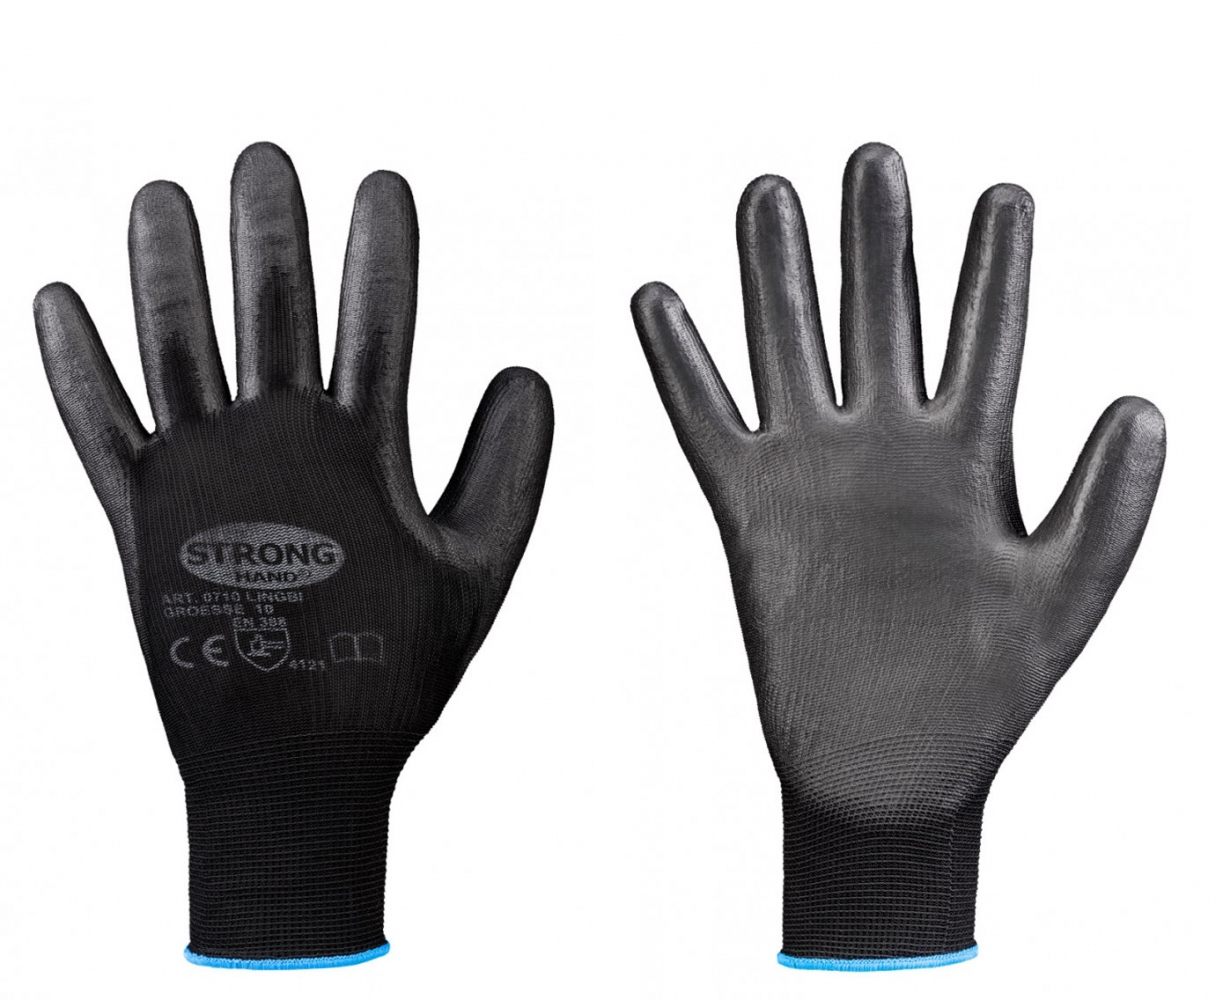 pics/Feldtmann 2016/Handschutz/google/stronghand-0710-lingbi-pu-coated-safety-gloves-nylon-seamless2.jpg